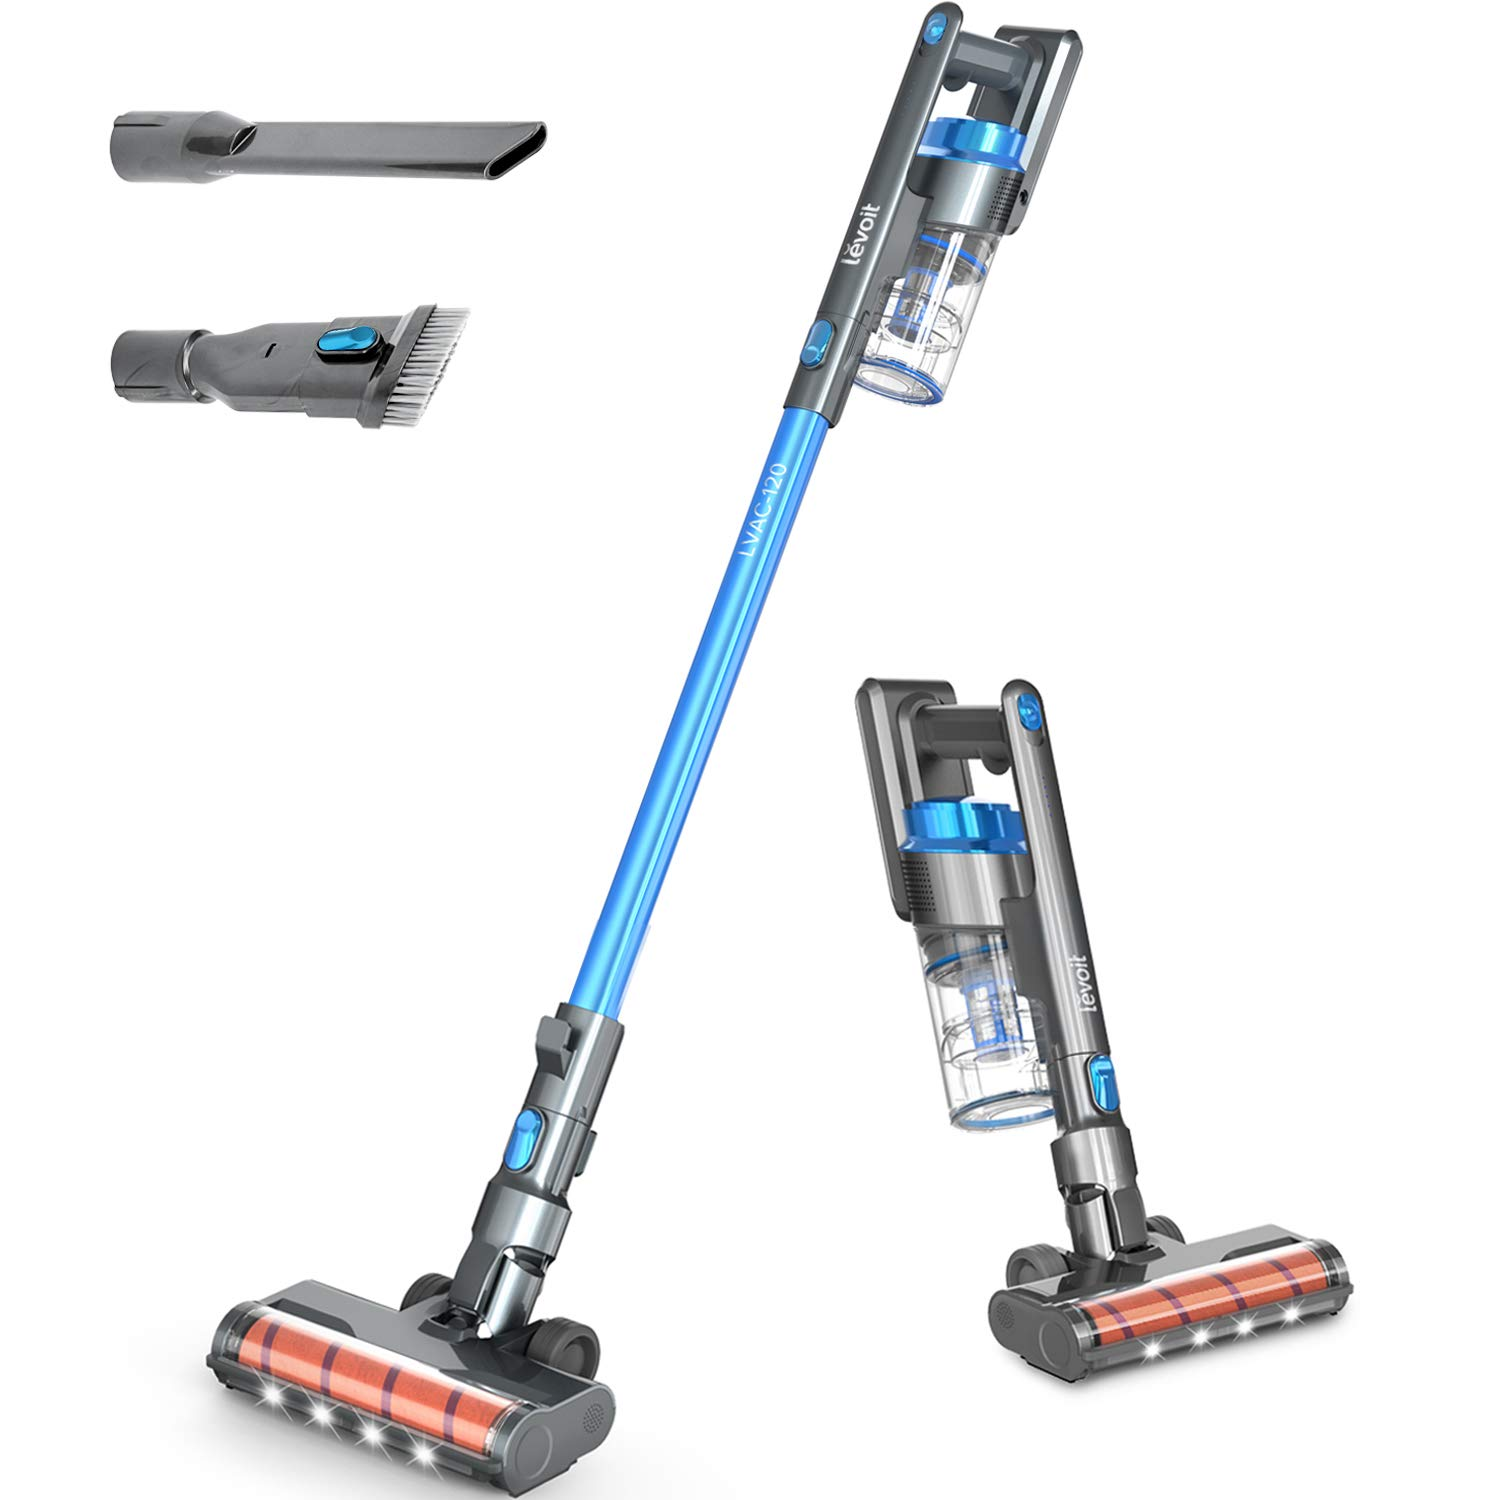 Cordless Vacuum Cleaner, LEVOIT Stick Handheld Lightweight Vacuum with 150W Powerful Suction for Hardwood Floor Pet Hair Carpet Car, Rechargeable Lithium Ion Battery and LED Brush, Blue & Gray